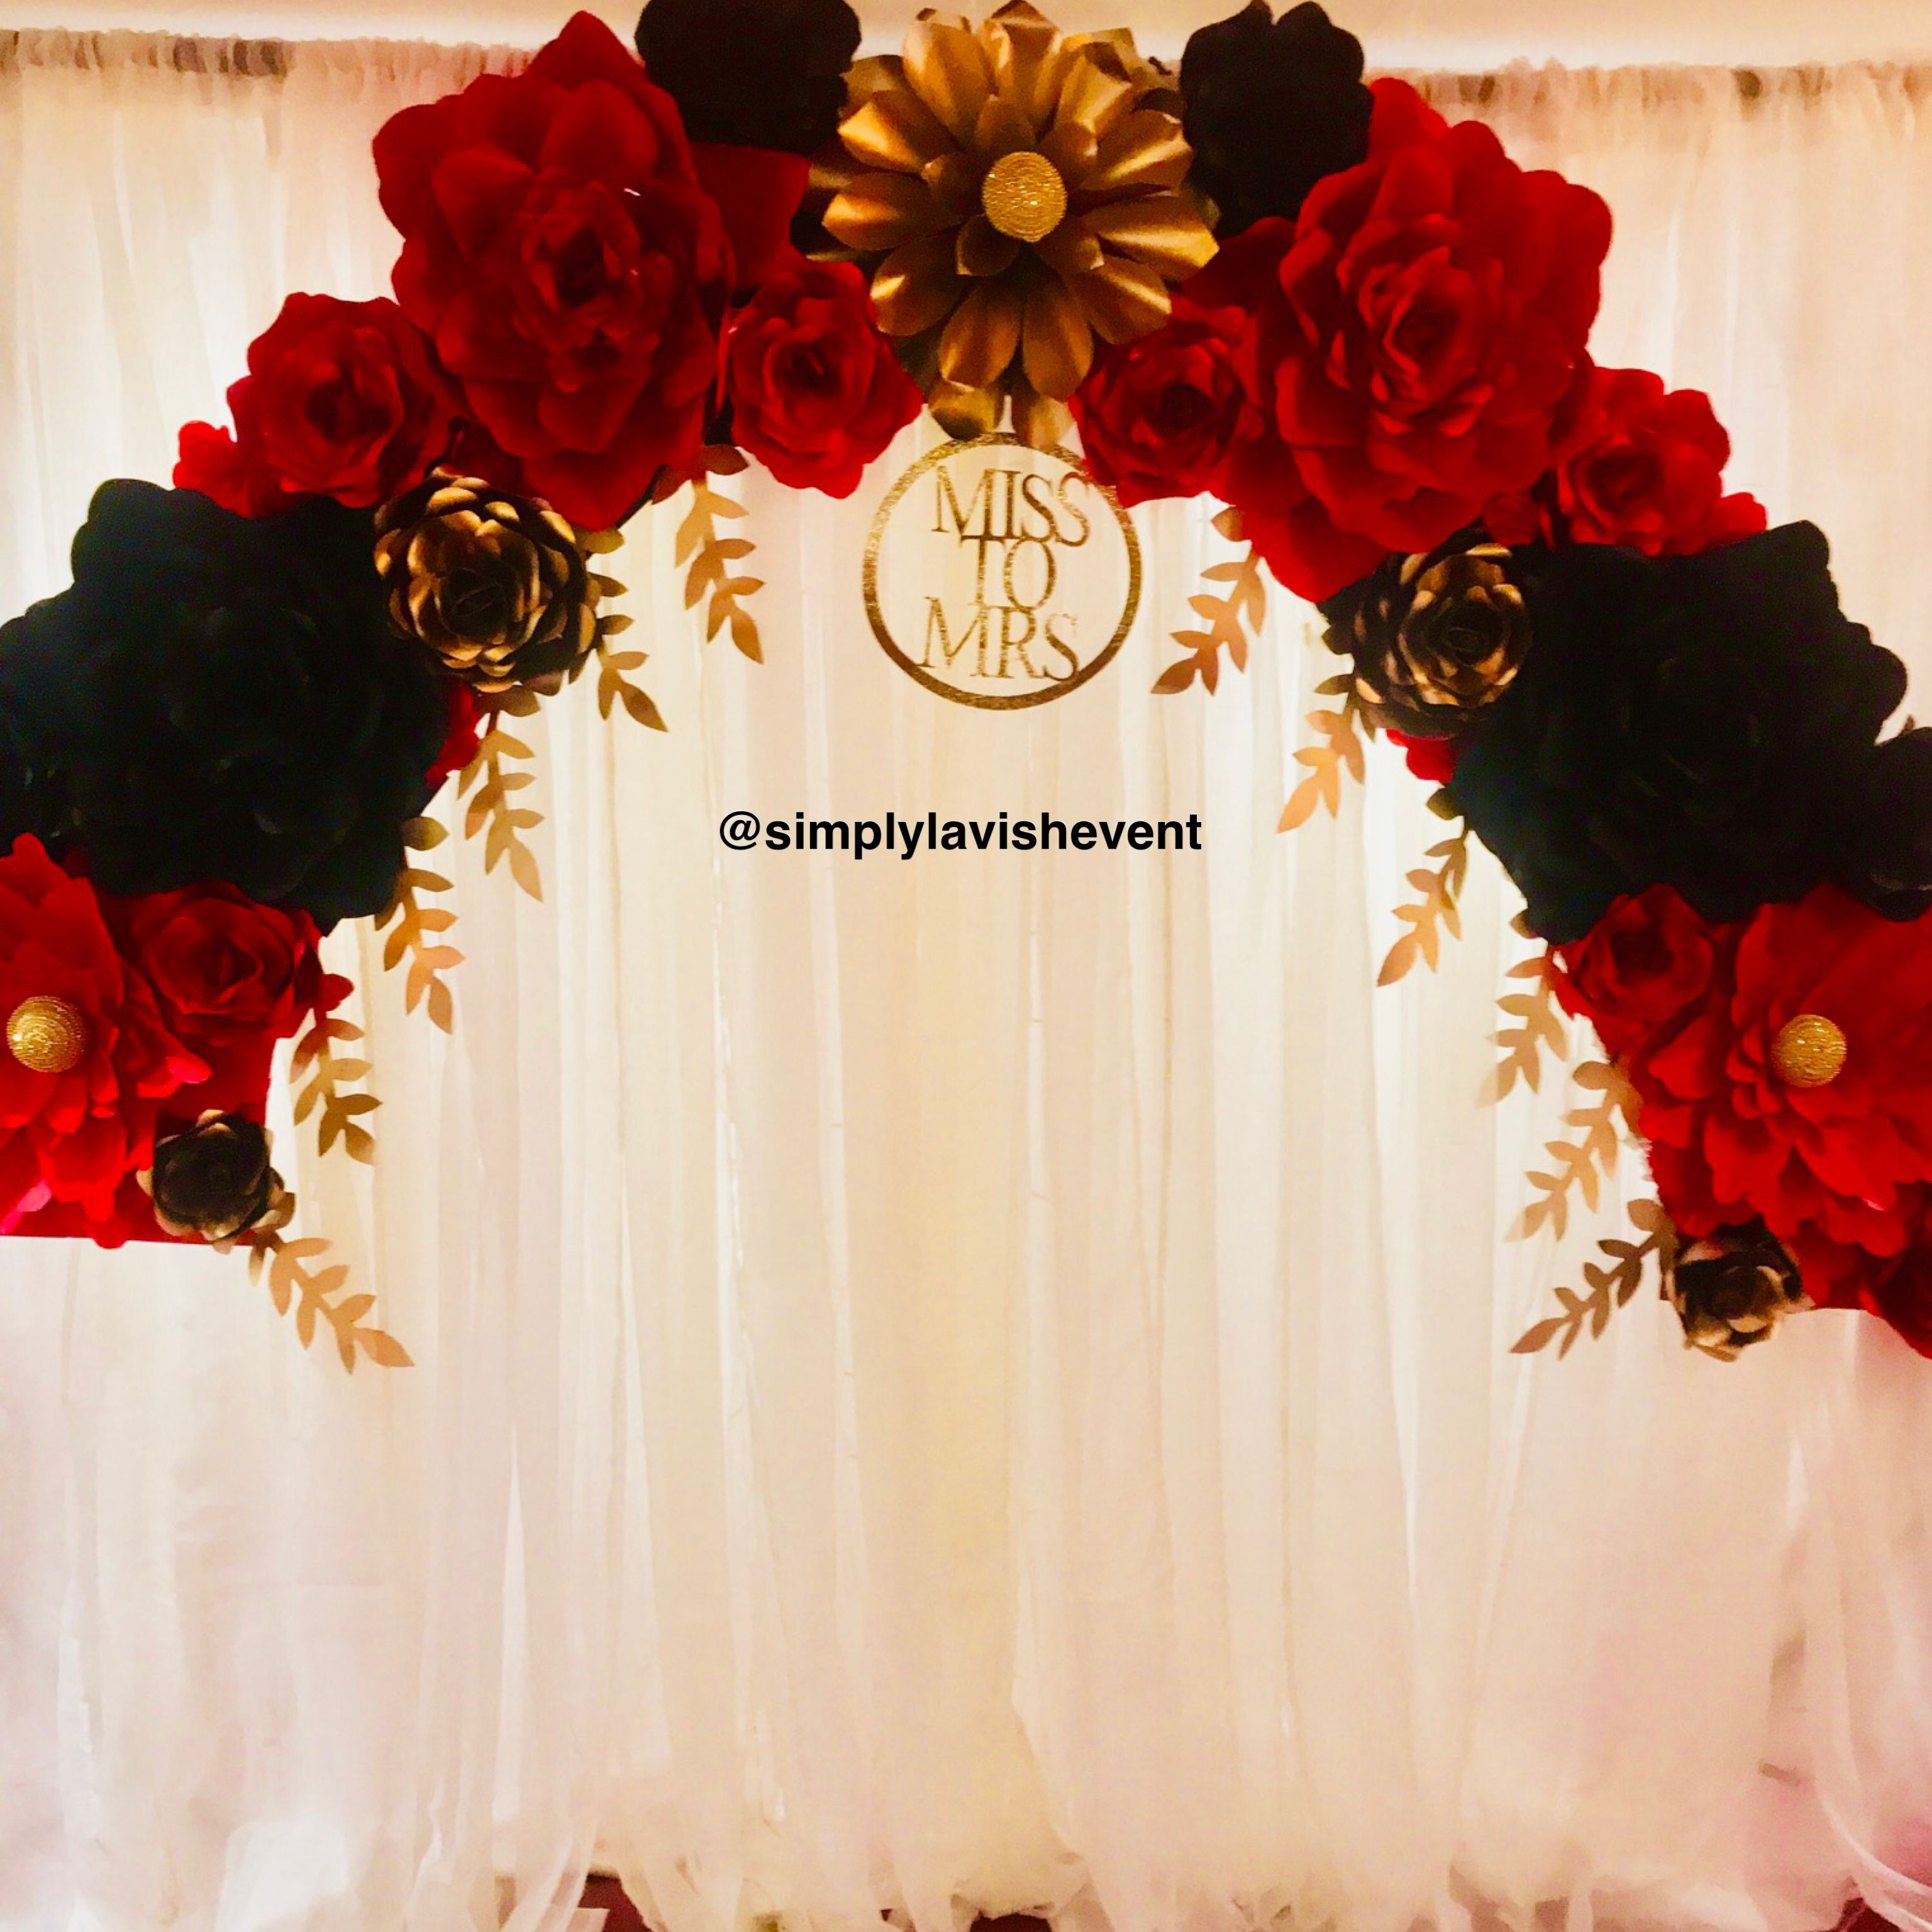 This Stunning Paper Flower Arch With Red Gold And Black Roses Is